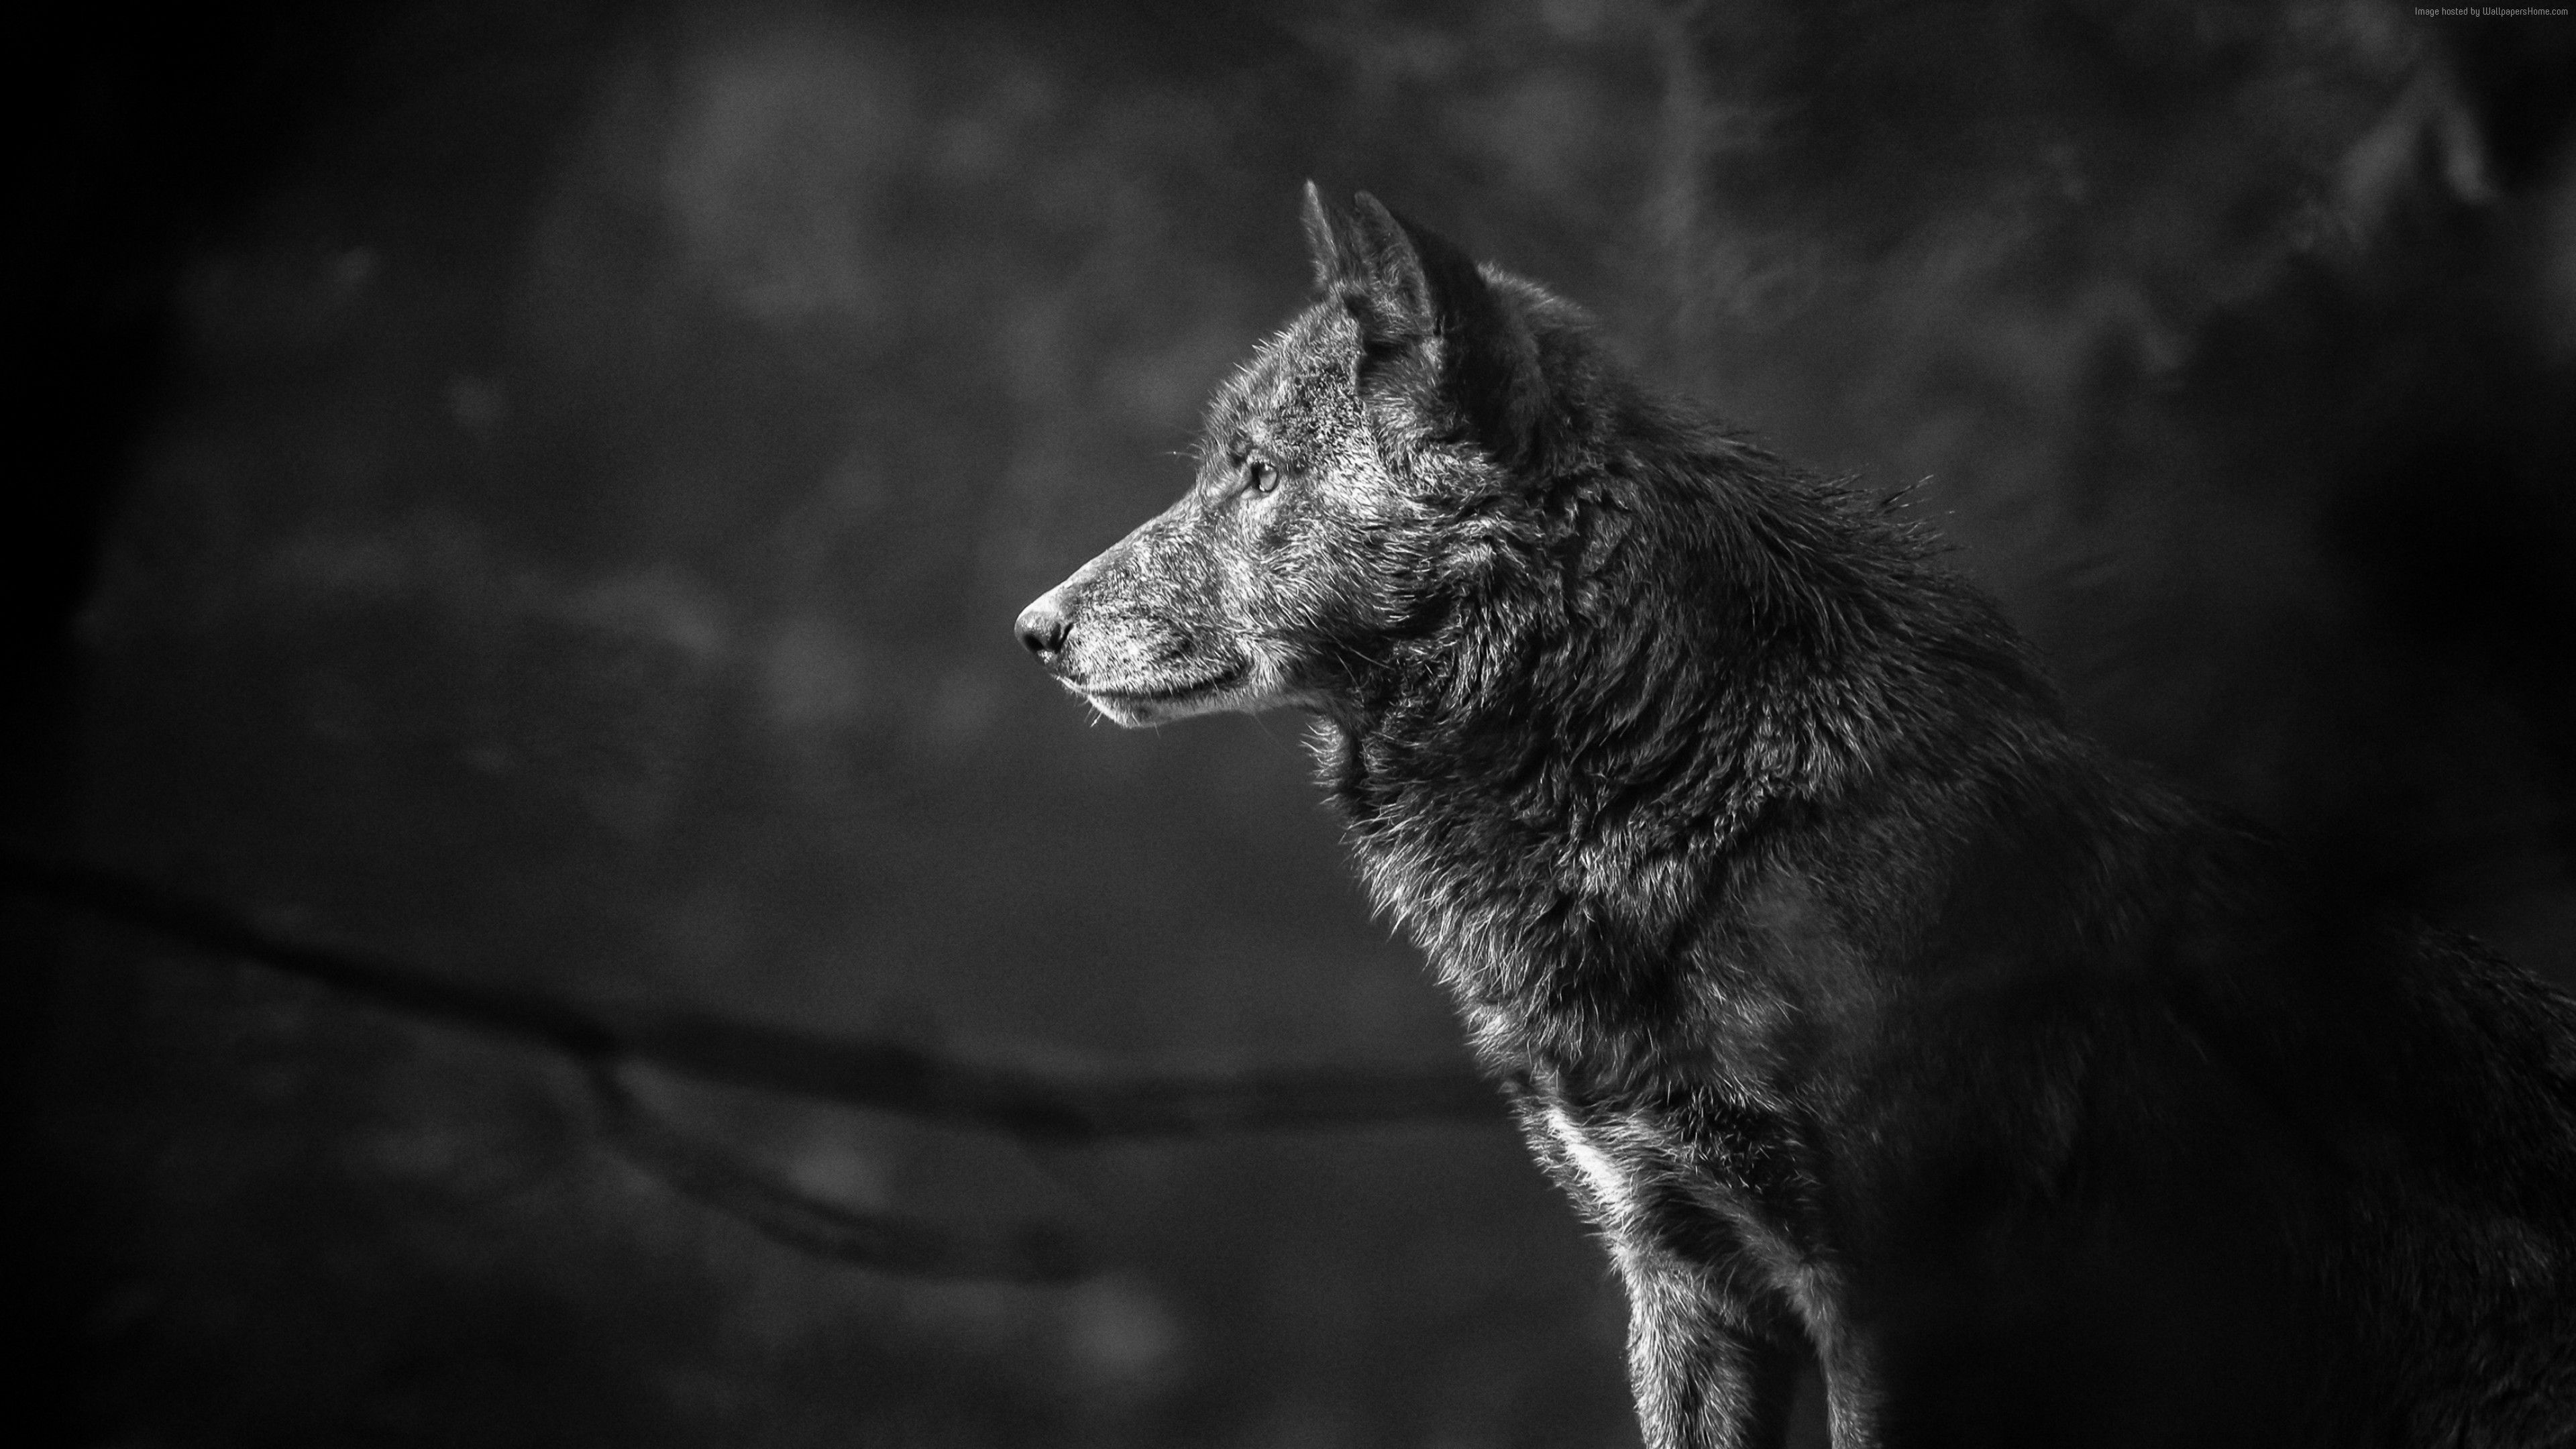 Pin by WallpaperLive on HD Wallpaper in 2019 Wolf